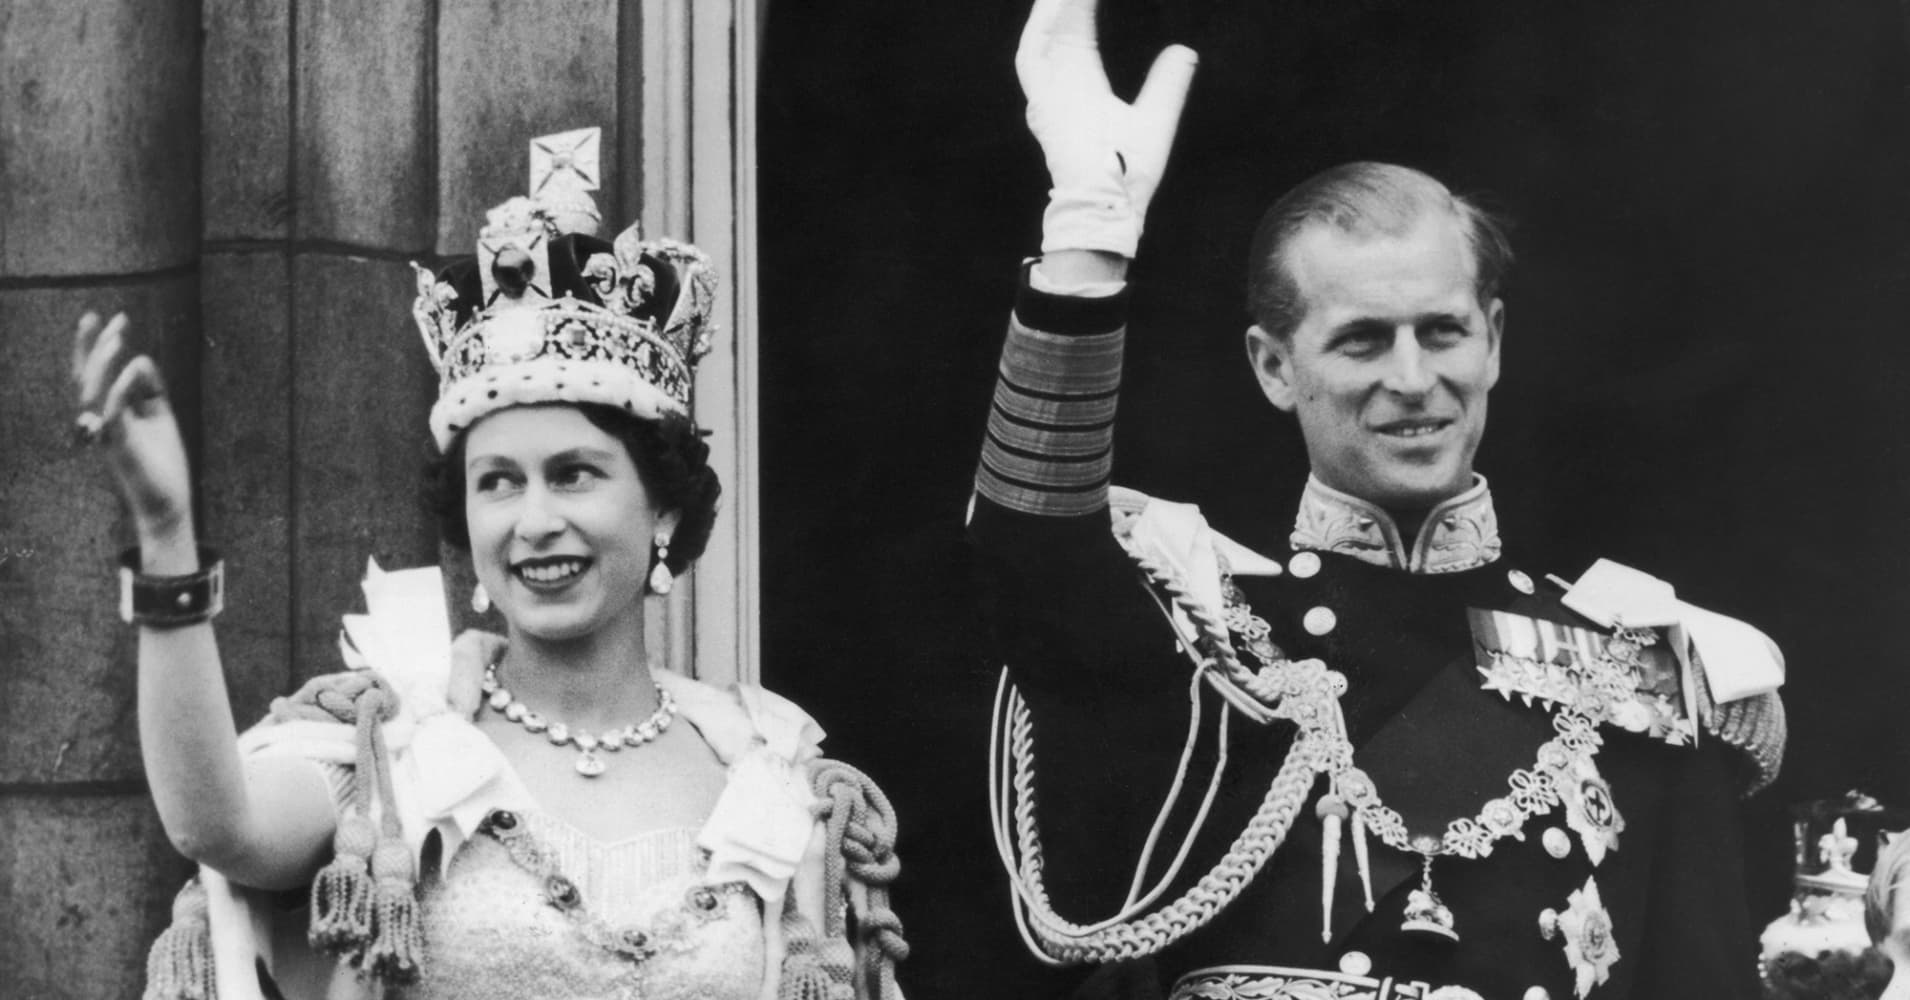 Queen Elizabeth II and the Duke of Edinburgh wave from the balcony at Buckingham Palace during the queen's coronation celebrations June 2, 1953.